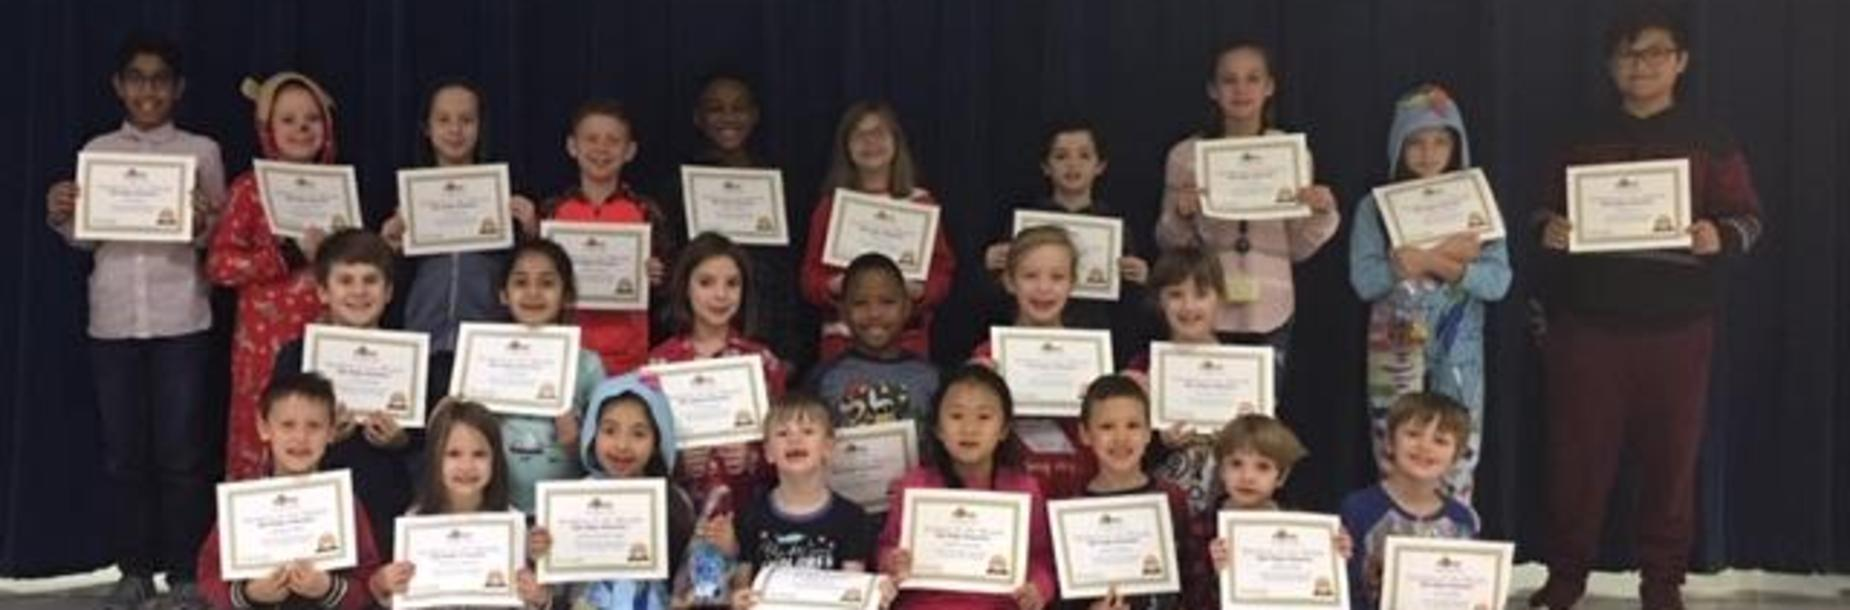 December 2018 Star Students of the Month